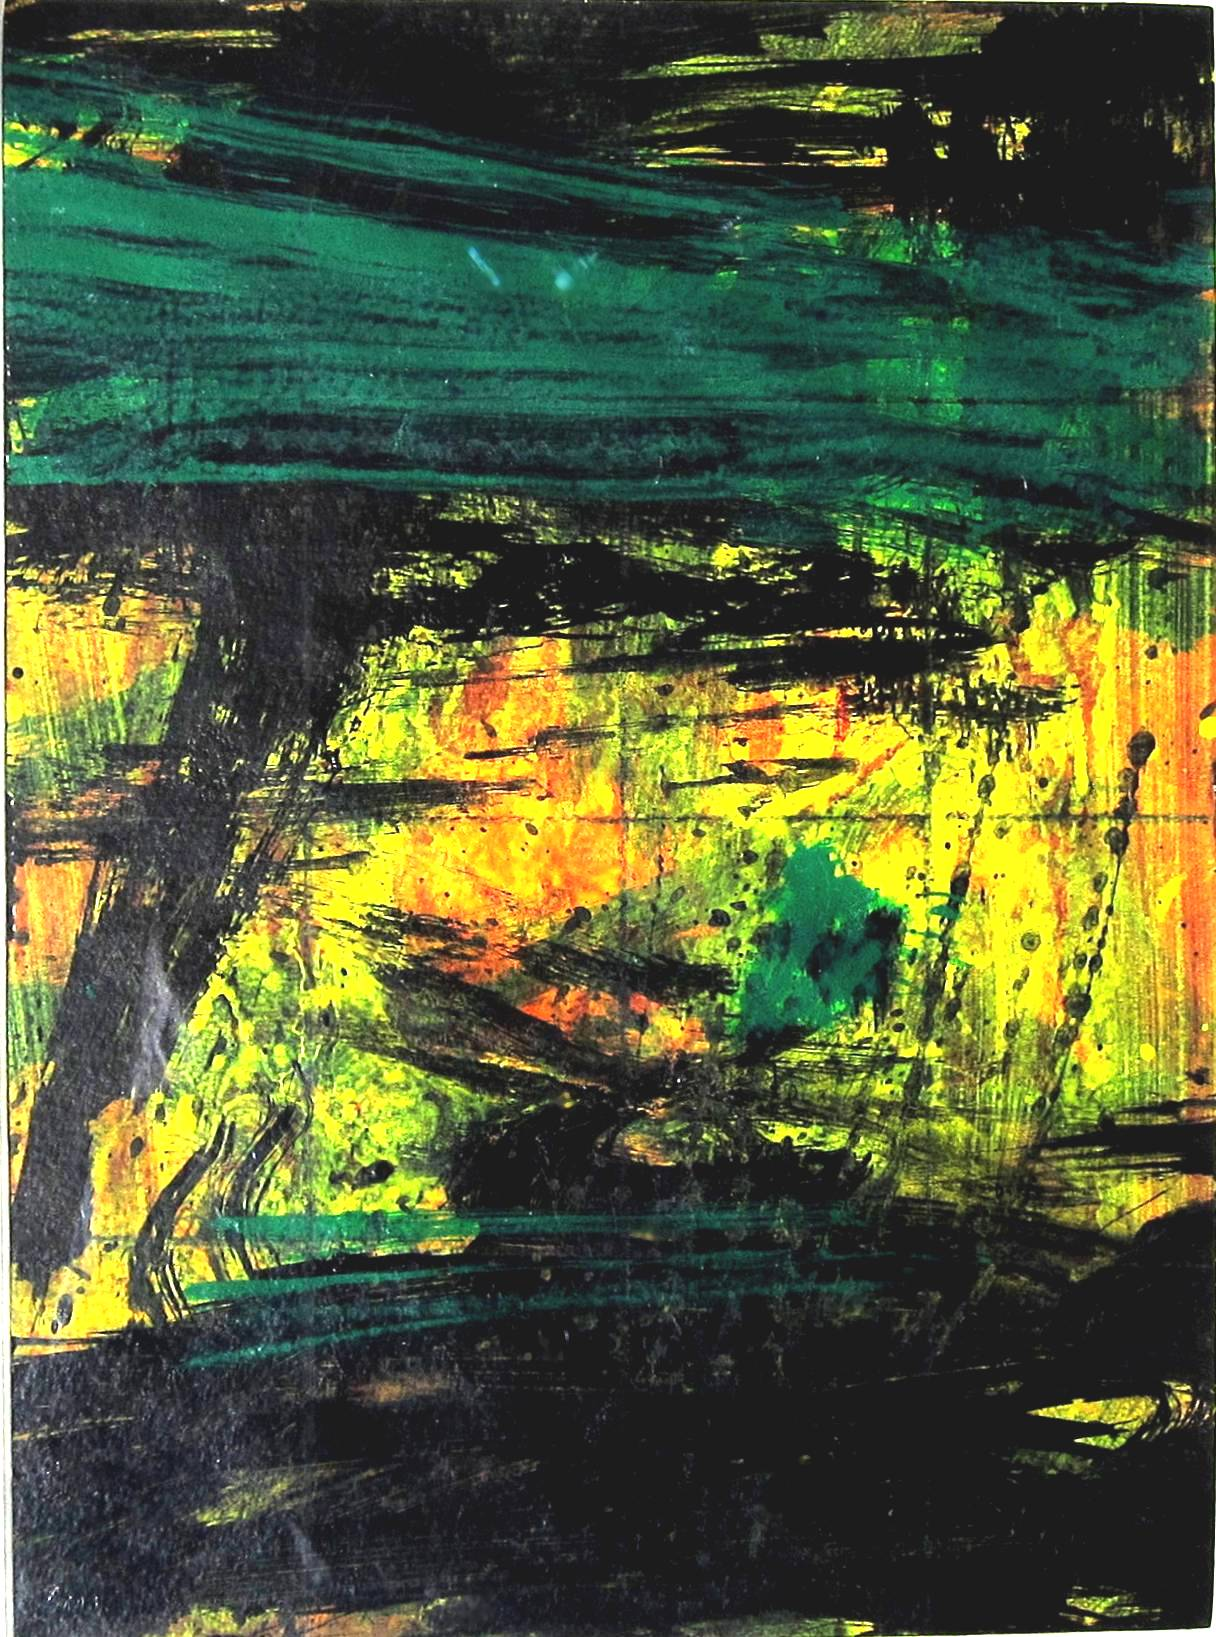 ROBERT CLATWORTHY, R.A. [1928-2015]. Abstract, 1998. Acrylic on card. Signed with initials. 29 x